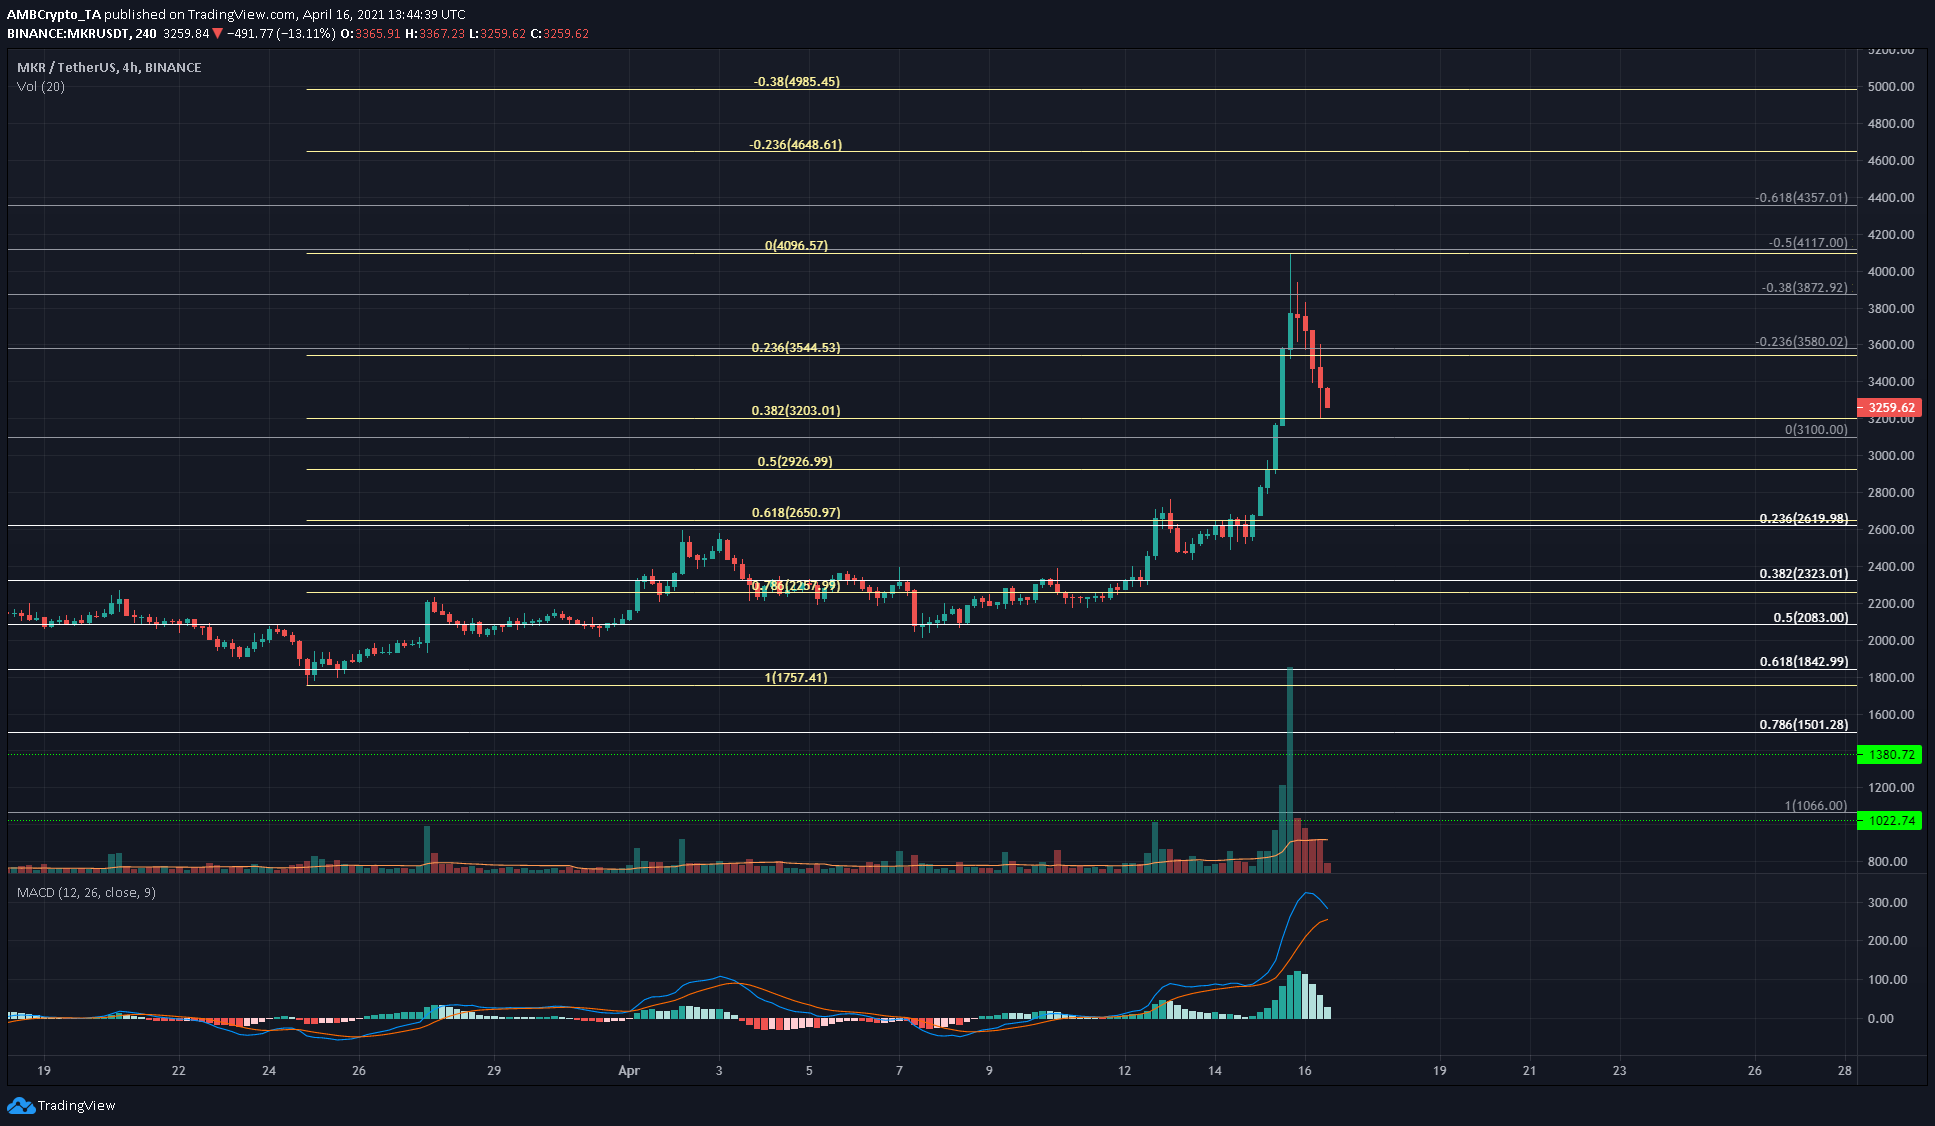 EOS, Synthetix, Maker Price Analysis: 16 April